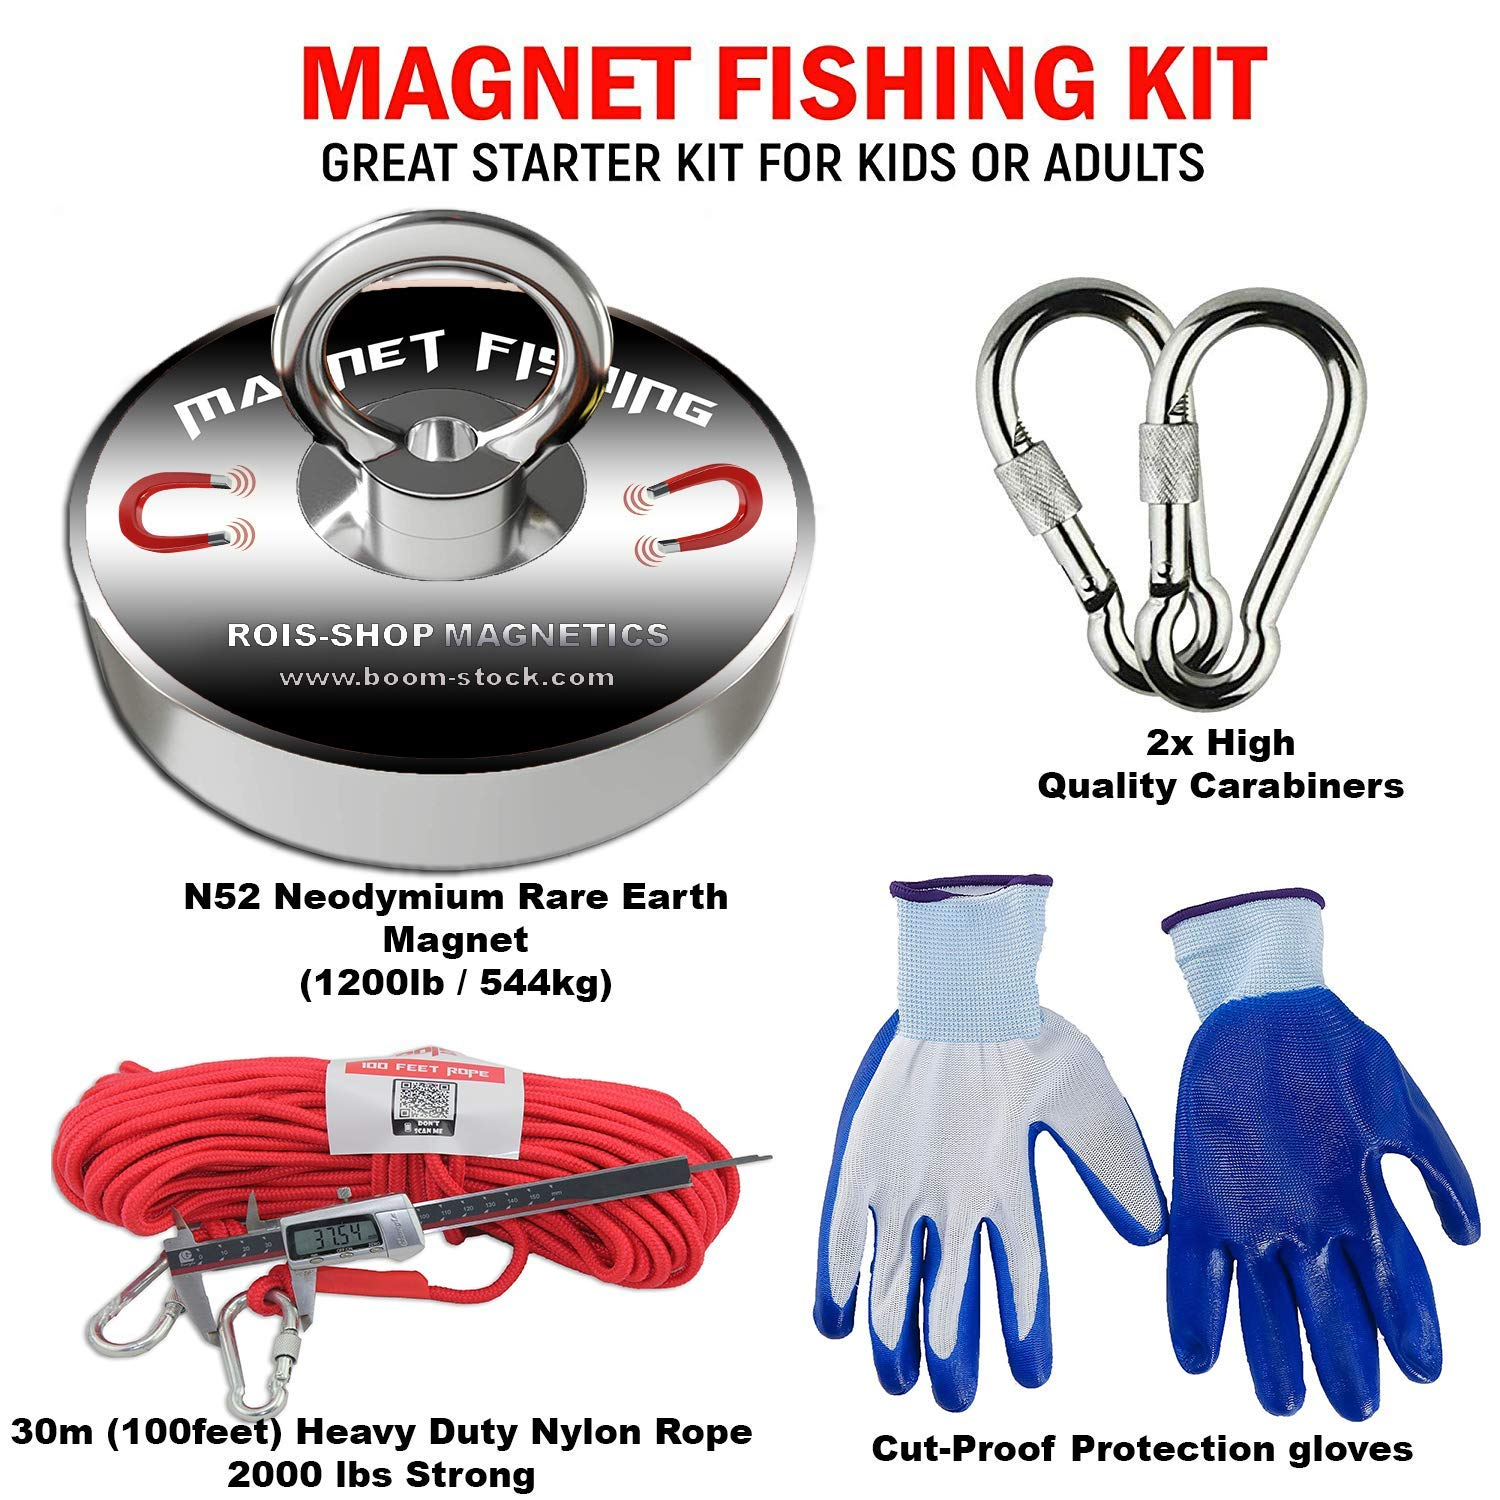 230kg Non-Slip Rubber Gloves /& Super Strong 600lb 600lb Fishing Magnet Bundle Pack Kit Includes 6mm 33ft High Strength Nylon Rope with Carabiner Pulling Force Rare Earth Magnet